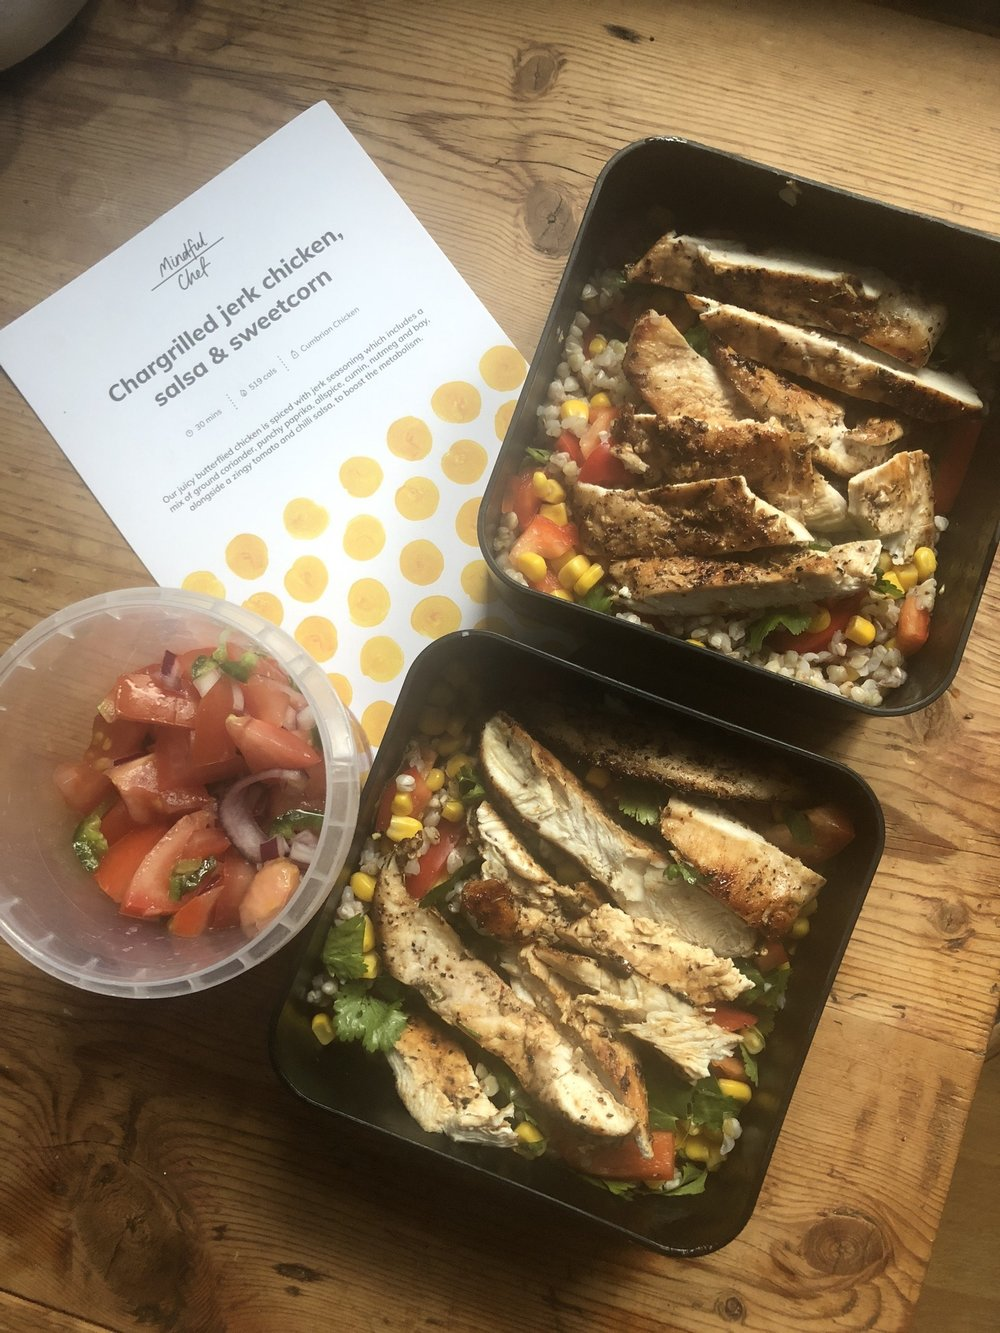 Prepped for two lunches with Mindful chef | Grace Brown Fitness London